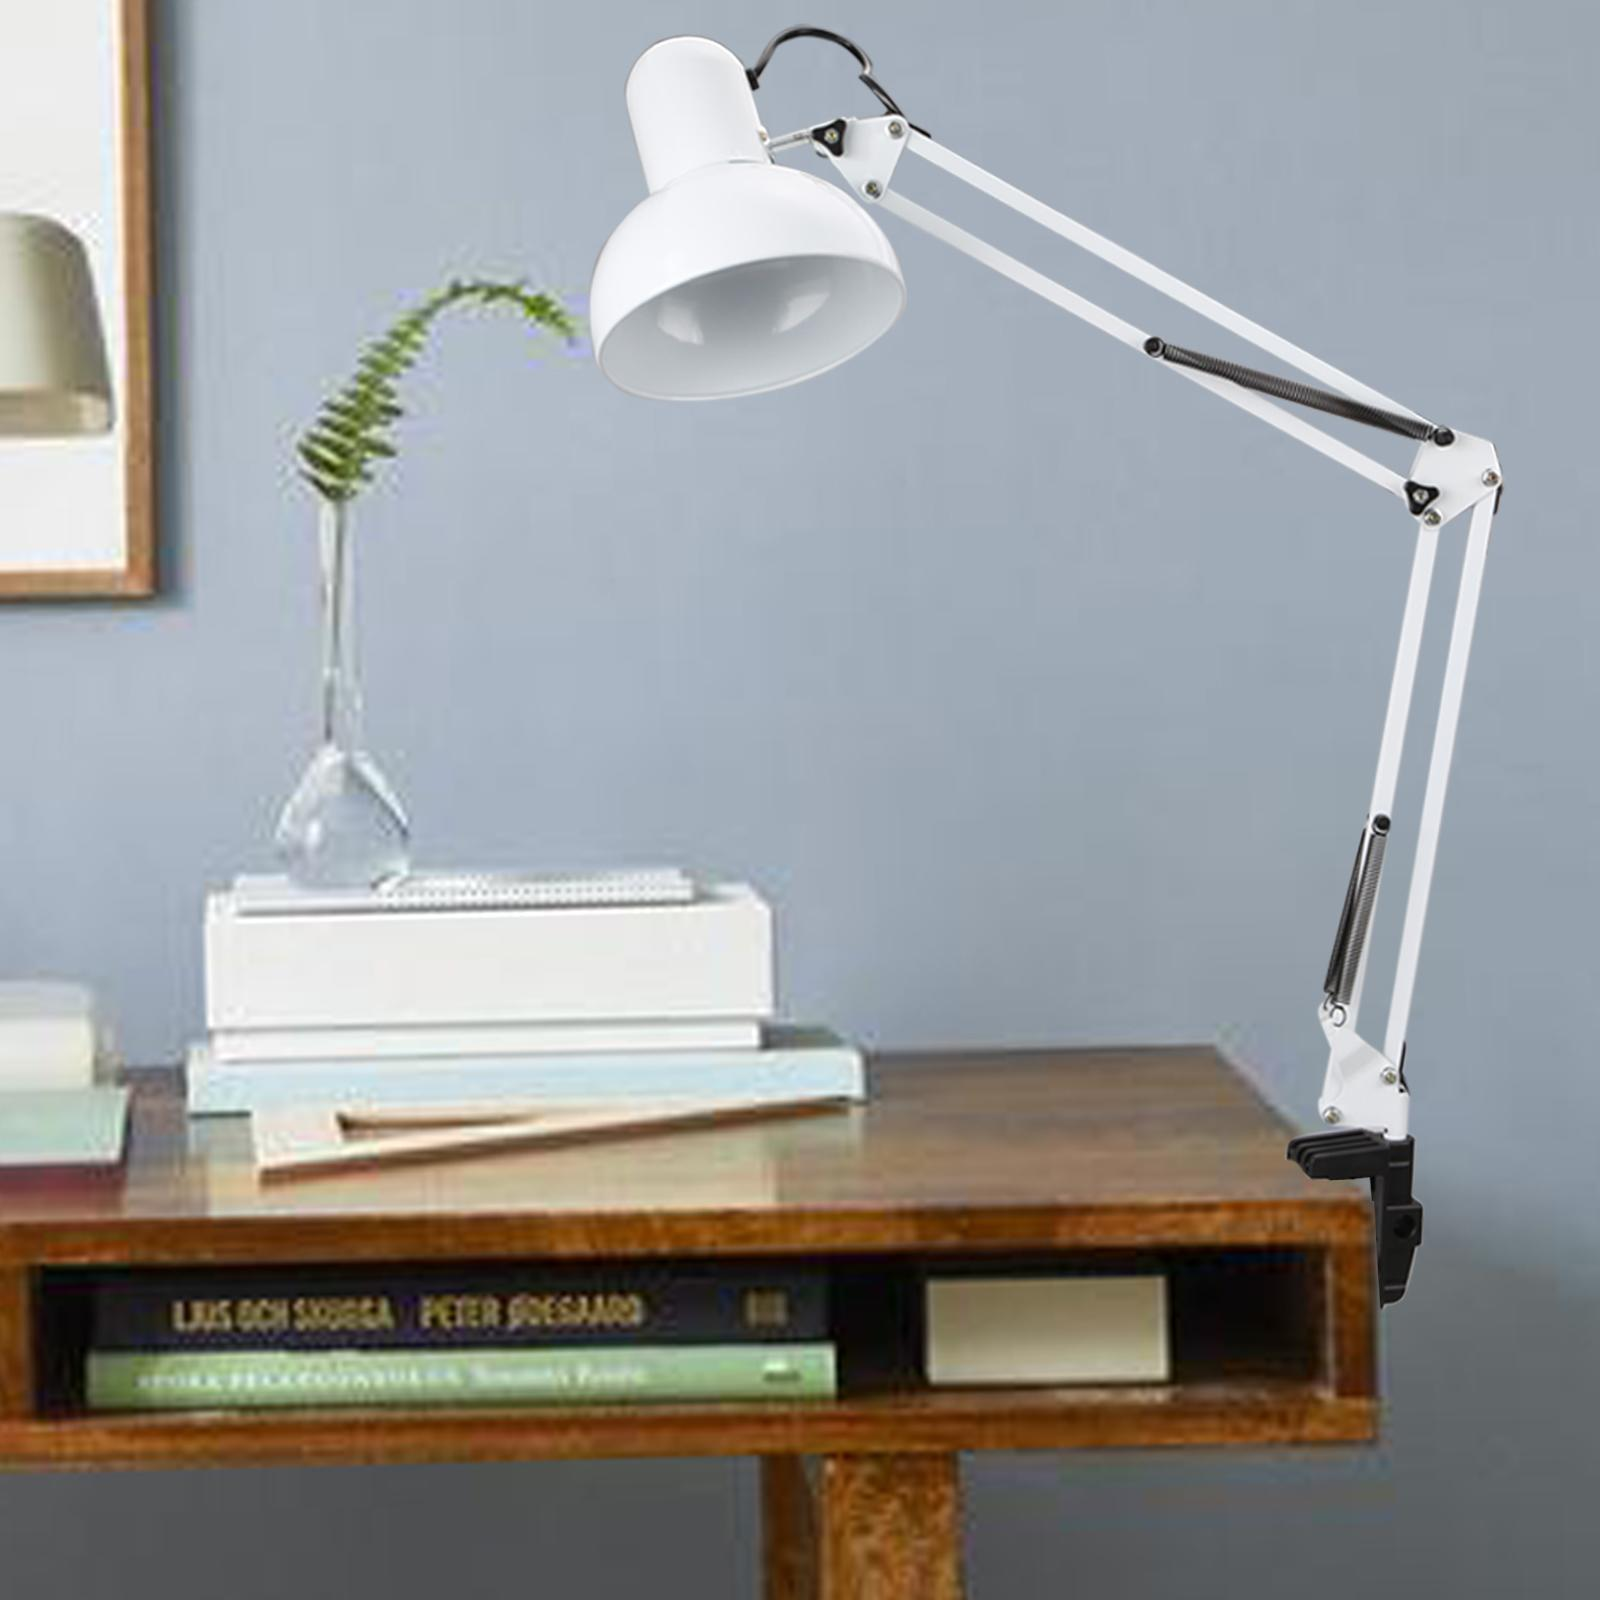 modern architect style swing arm clamp mount table desk lamp light us plug gs8d ebay. Black Bedroom Furniture Sets. Home Design Ideas